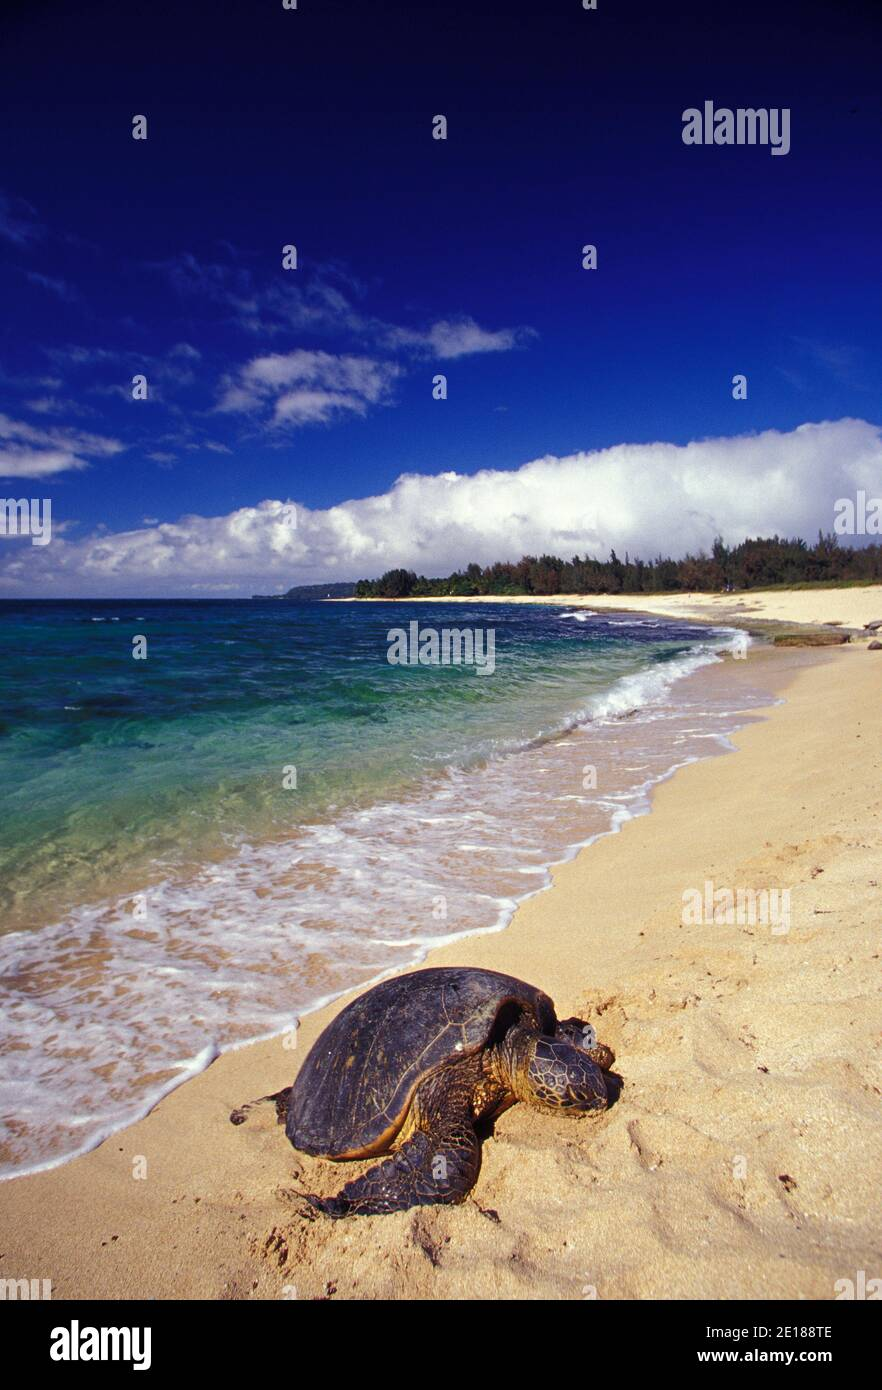 Green Sea Turtle, a protected species, haled out on a remote beach with blue green ocean in back, North Shore of Oahu, Hawaii Stock Photo